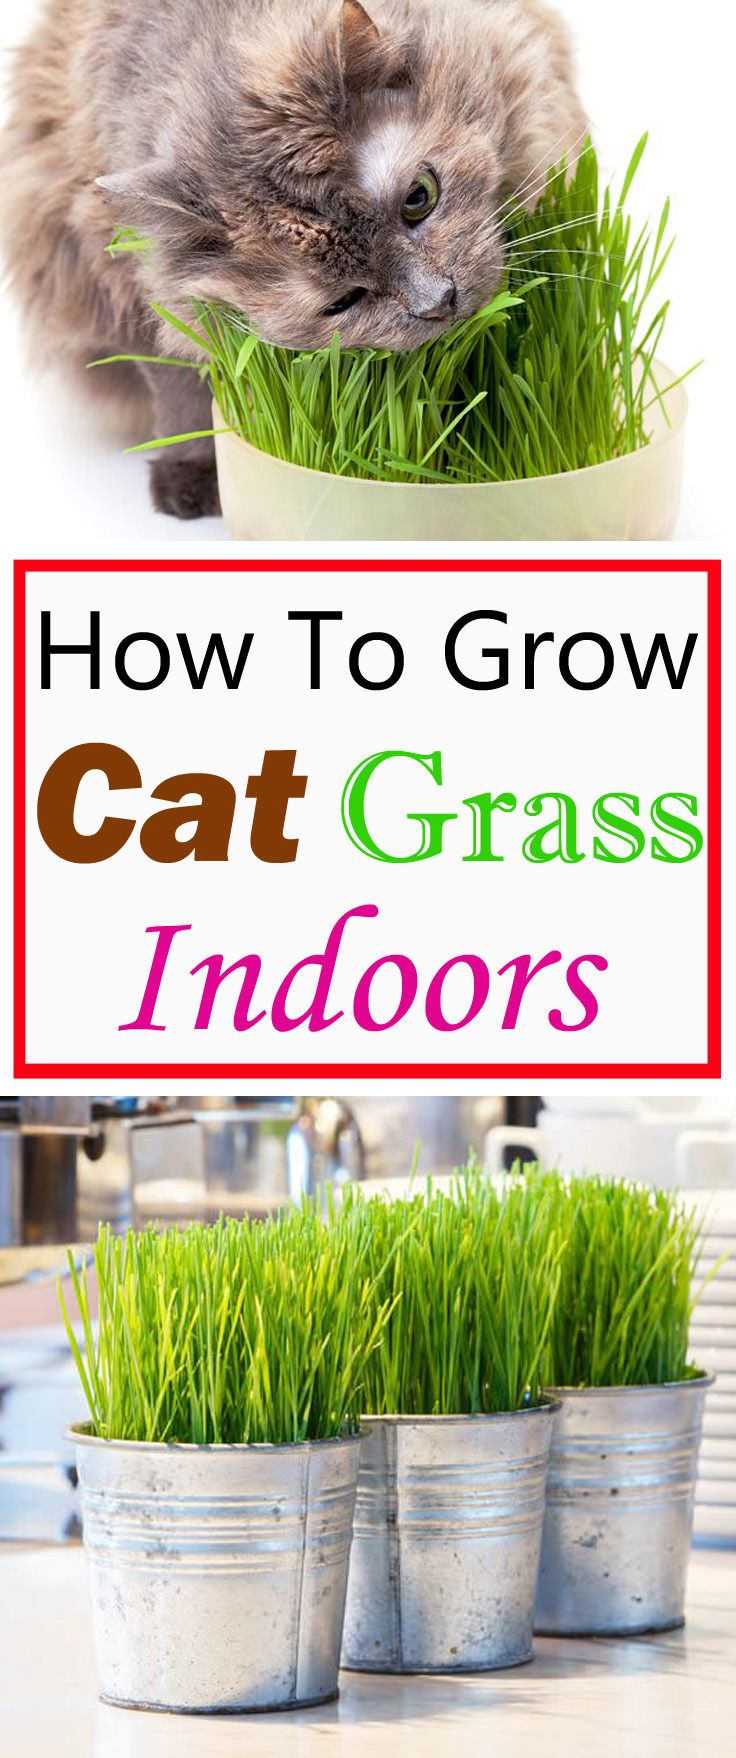 Growing Cat Grass Indoors